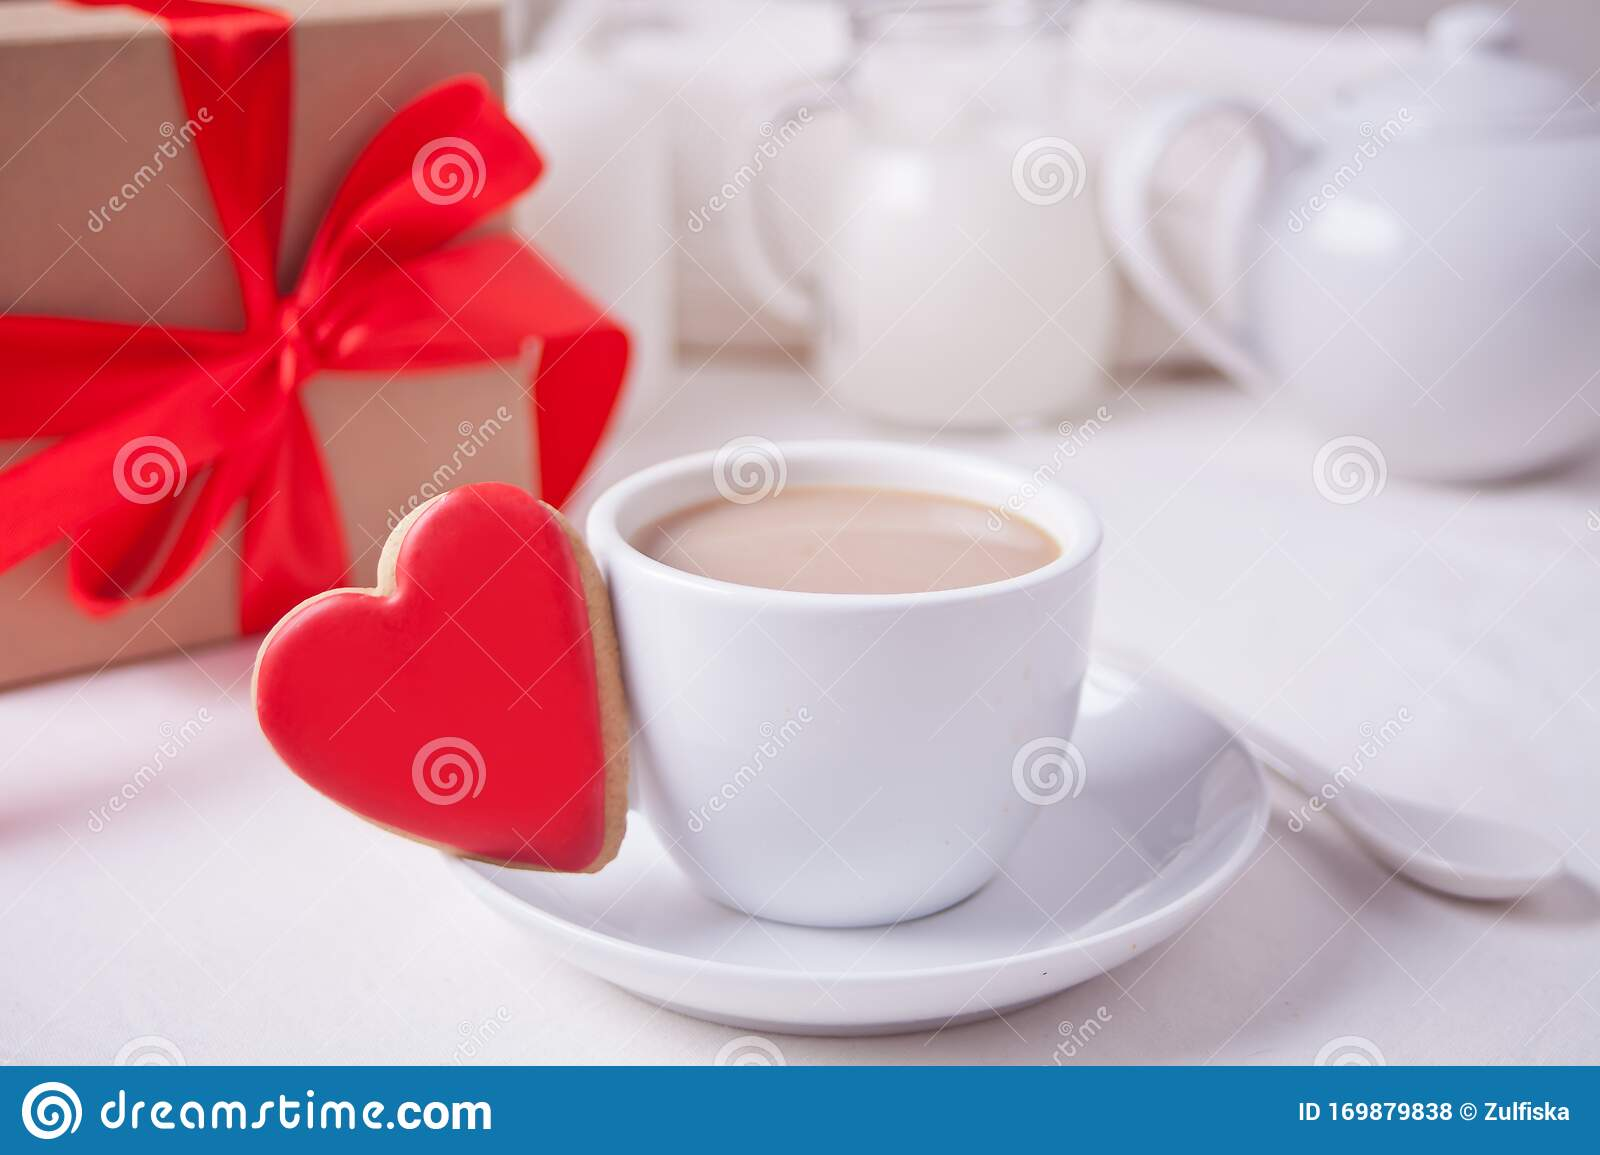 Cup Of Coffee And A Heart Shaped Red Cookie With Gift Box And Teapot On The White Table Stock Photo Image Of Cookies Cafe 169879838